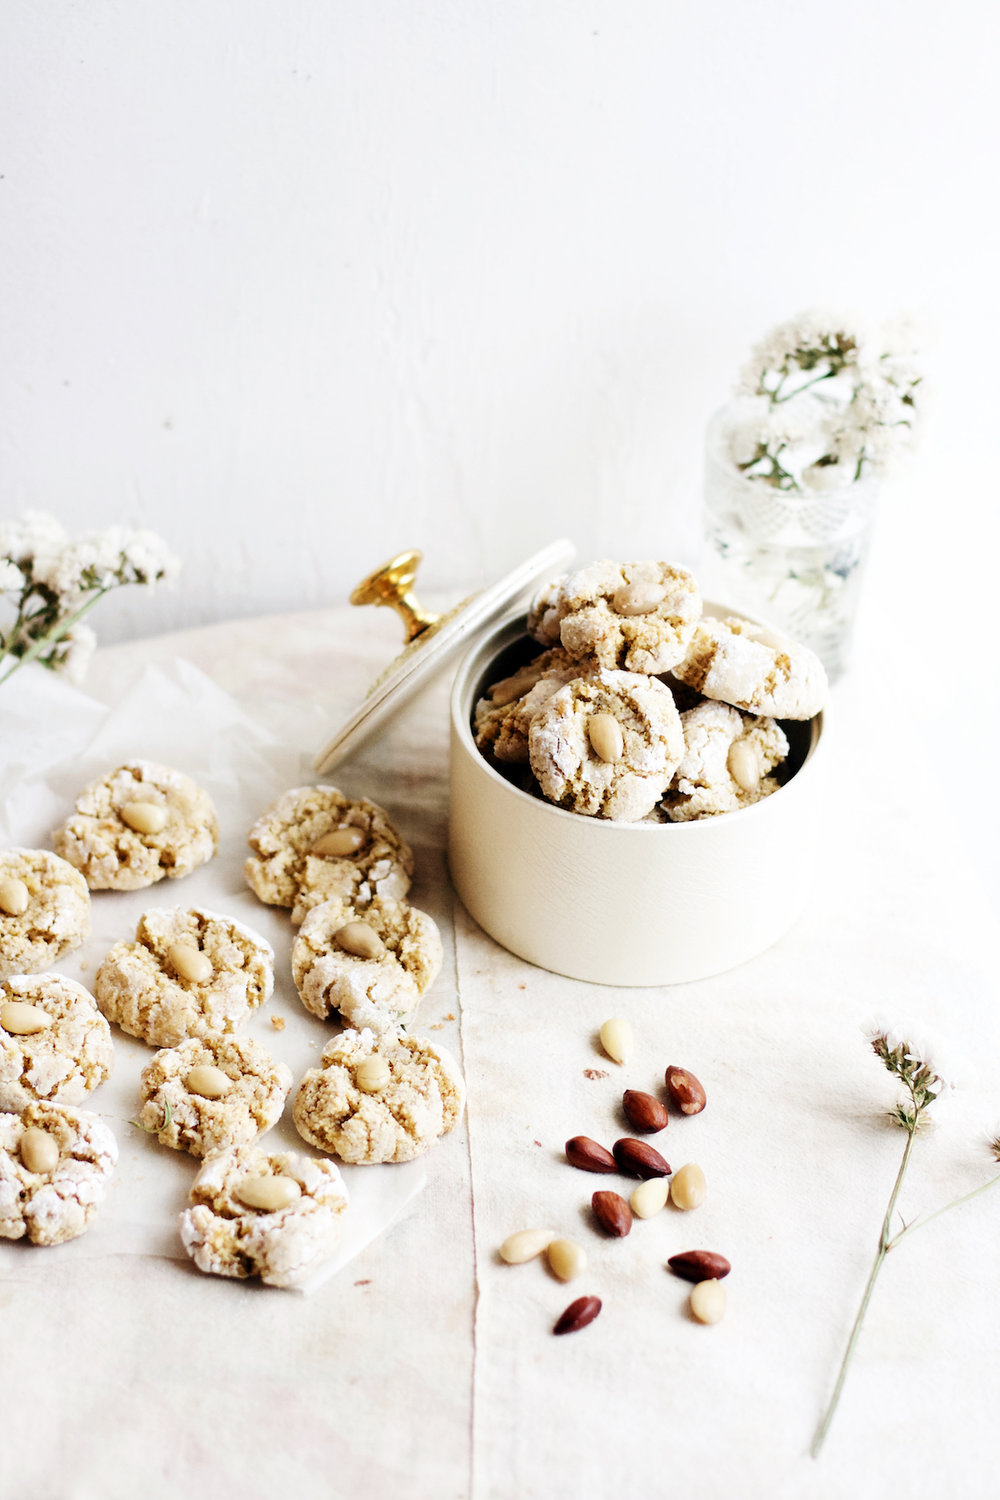 Moroccan Coconut + Almond Cookies, made w/ semolina and orange blossom | Ruby Josephine